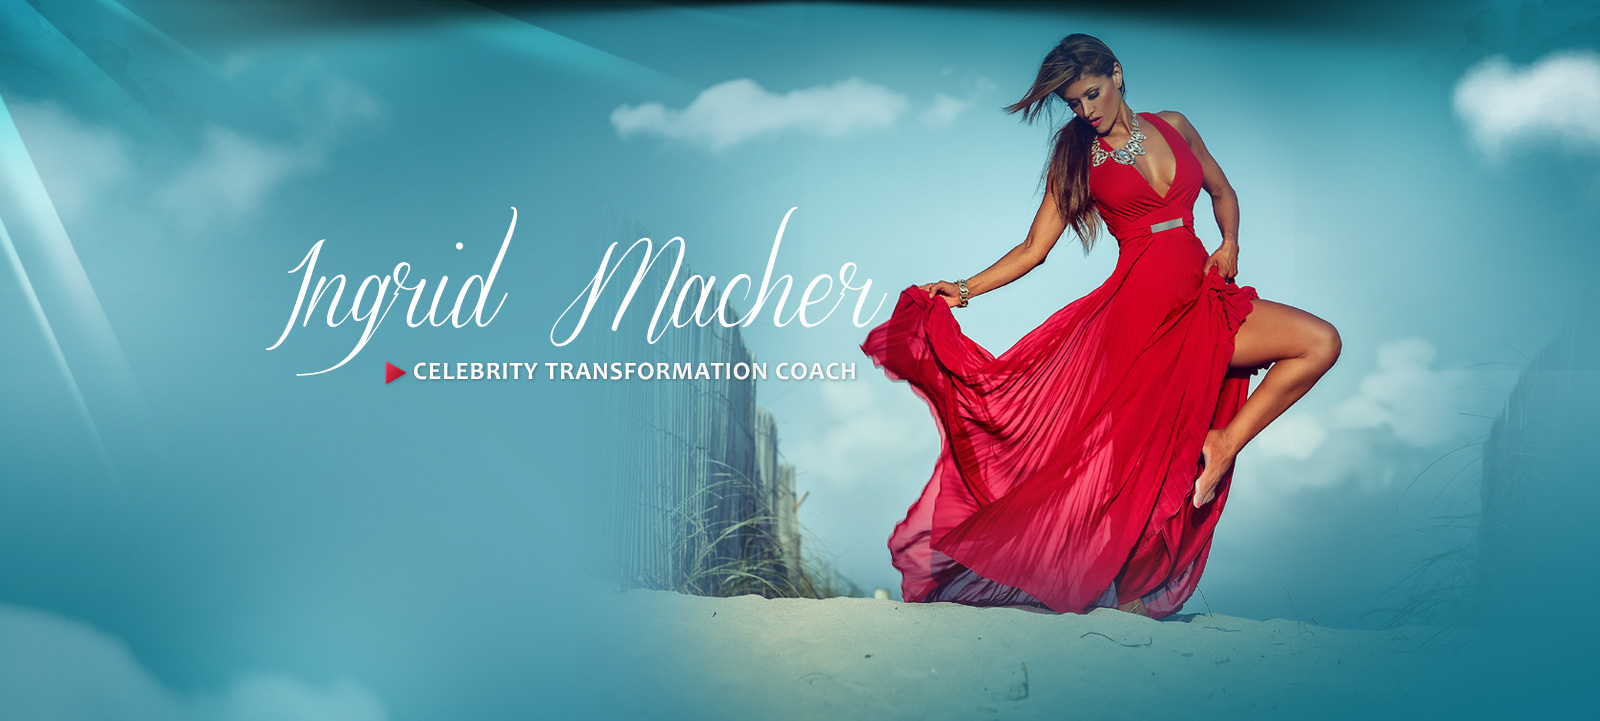 Ingrid-Macher-Celebrity-Transformation-Coach